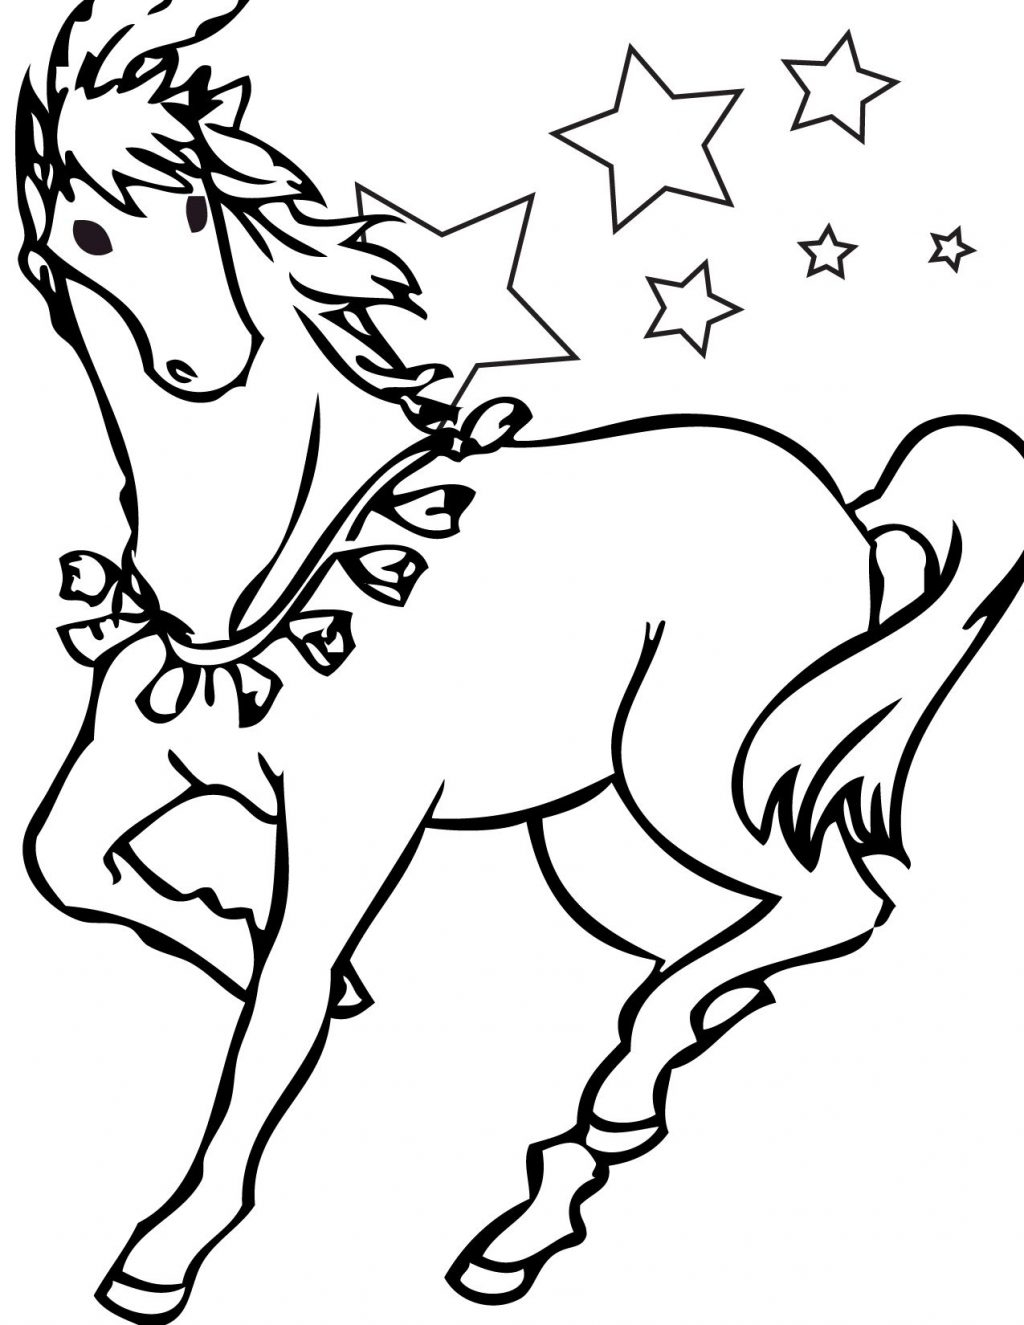 Free Horse Coloring Pages Coloring Pages Coloring Pages Free Printableorse For Kids Little